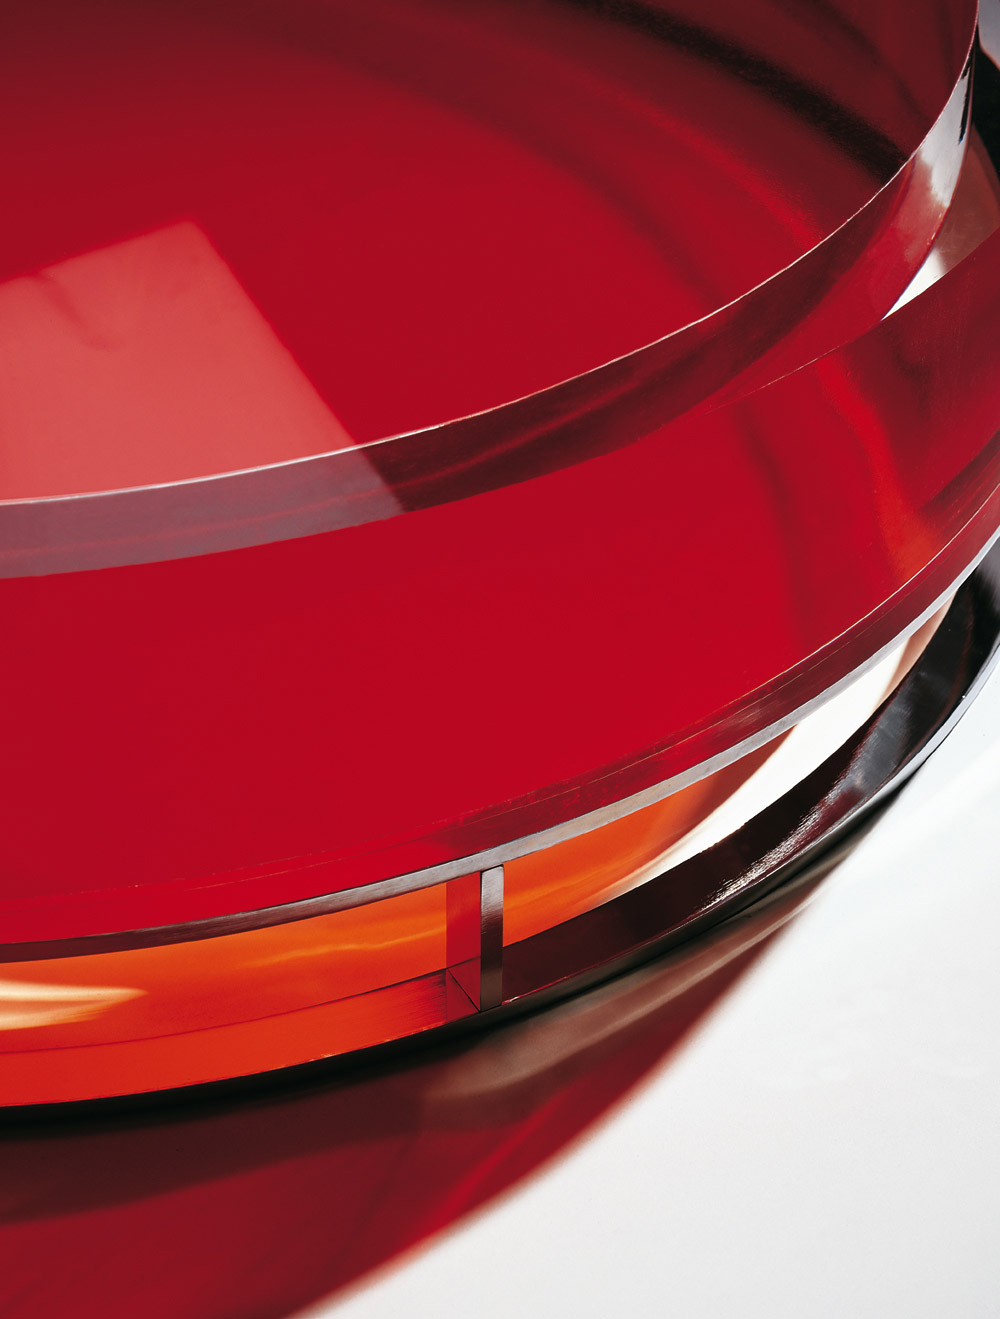 Custom furniture design luxury home decor table pastille red glass table close up